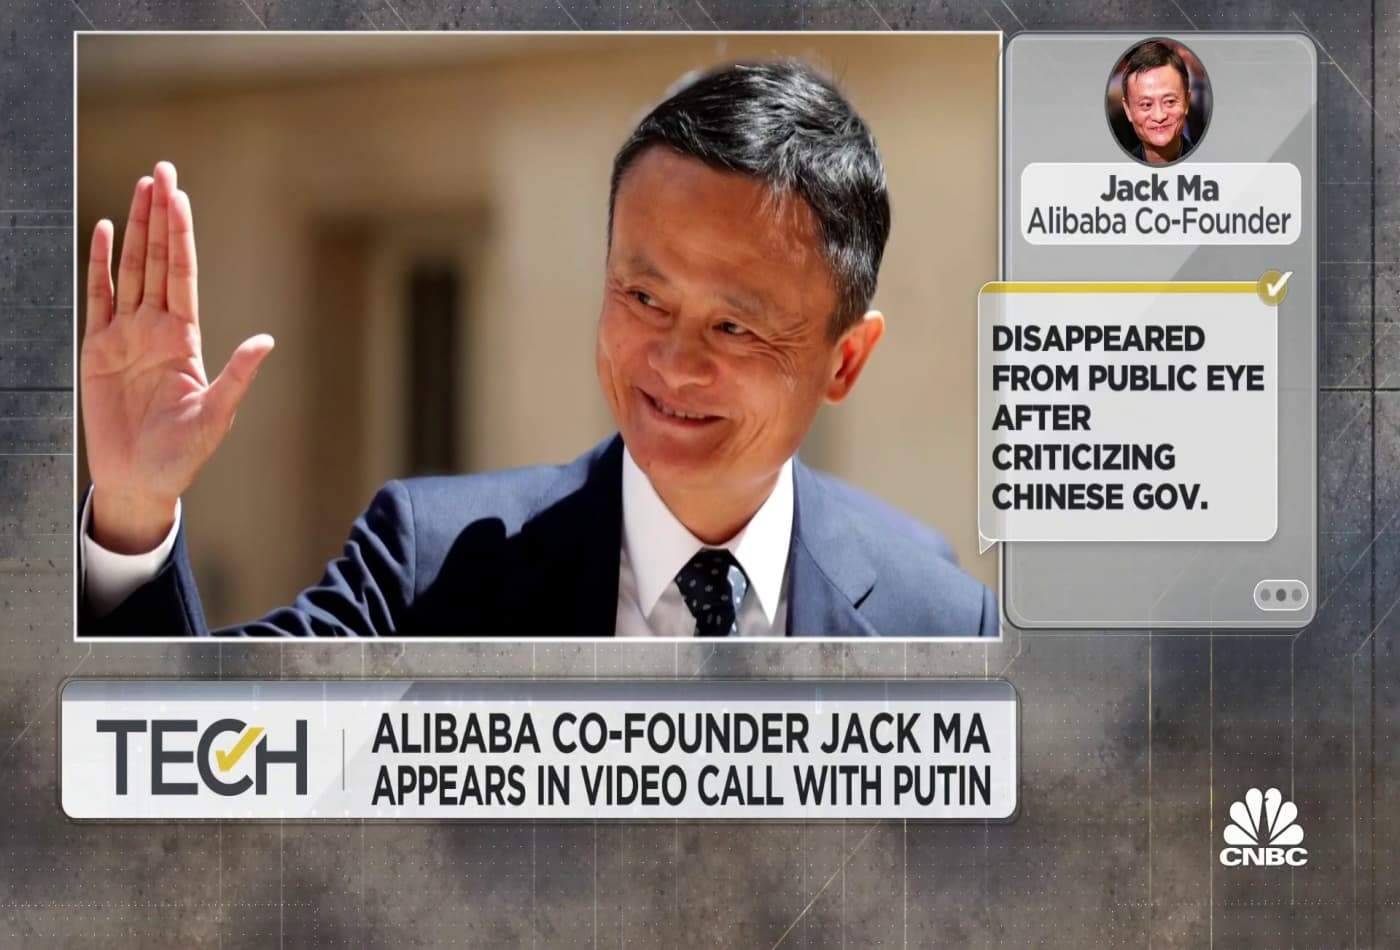 Alibaba co-founder Jack Ma appears in video call with Putin